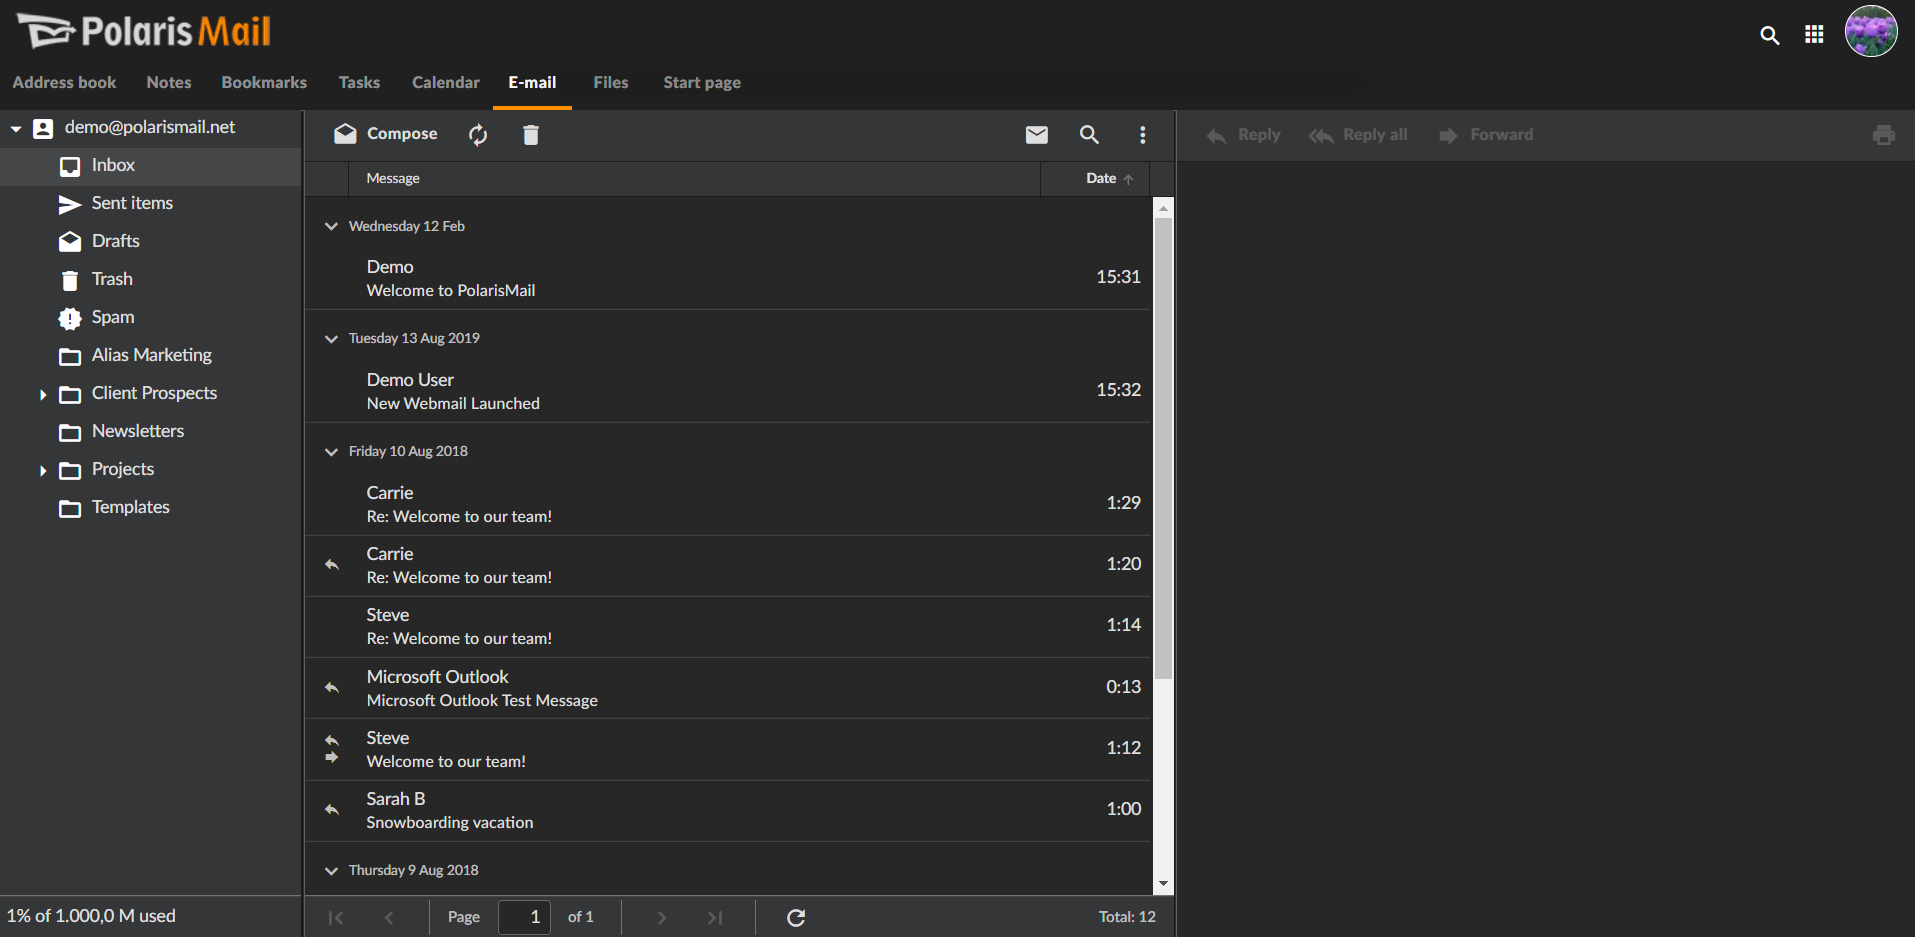 PolarisMail's webmail has a new look available: the dark theme